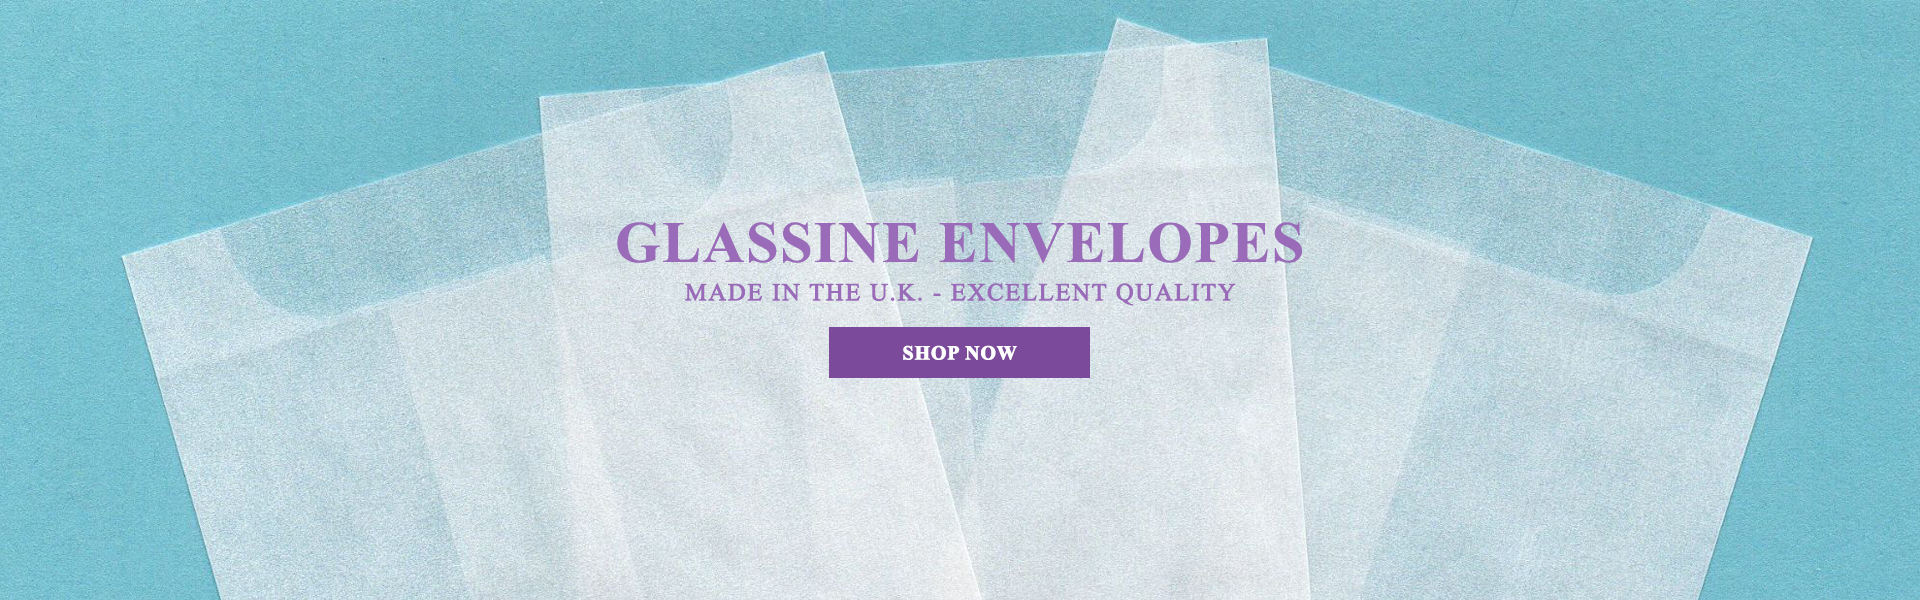 High Quality Glassine Envelopes